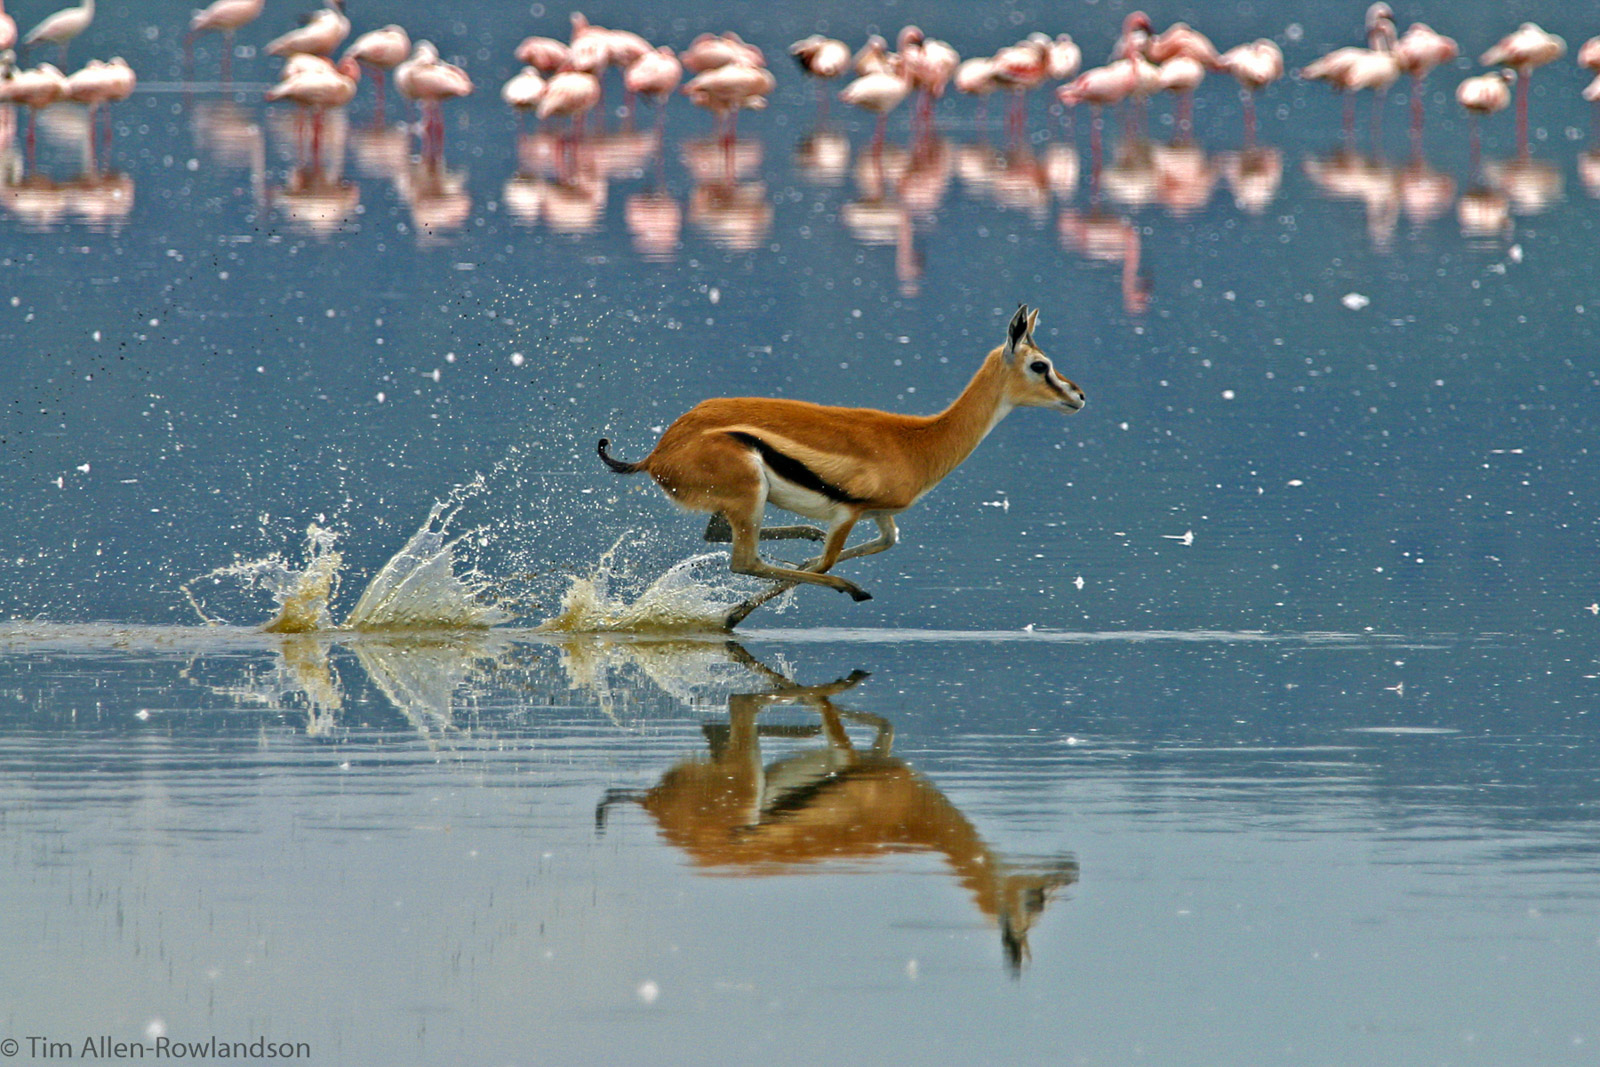 Female Thomson's gazelle sprinting through the shallow waters of Lake Nakuru, Kenya.